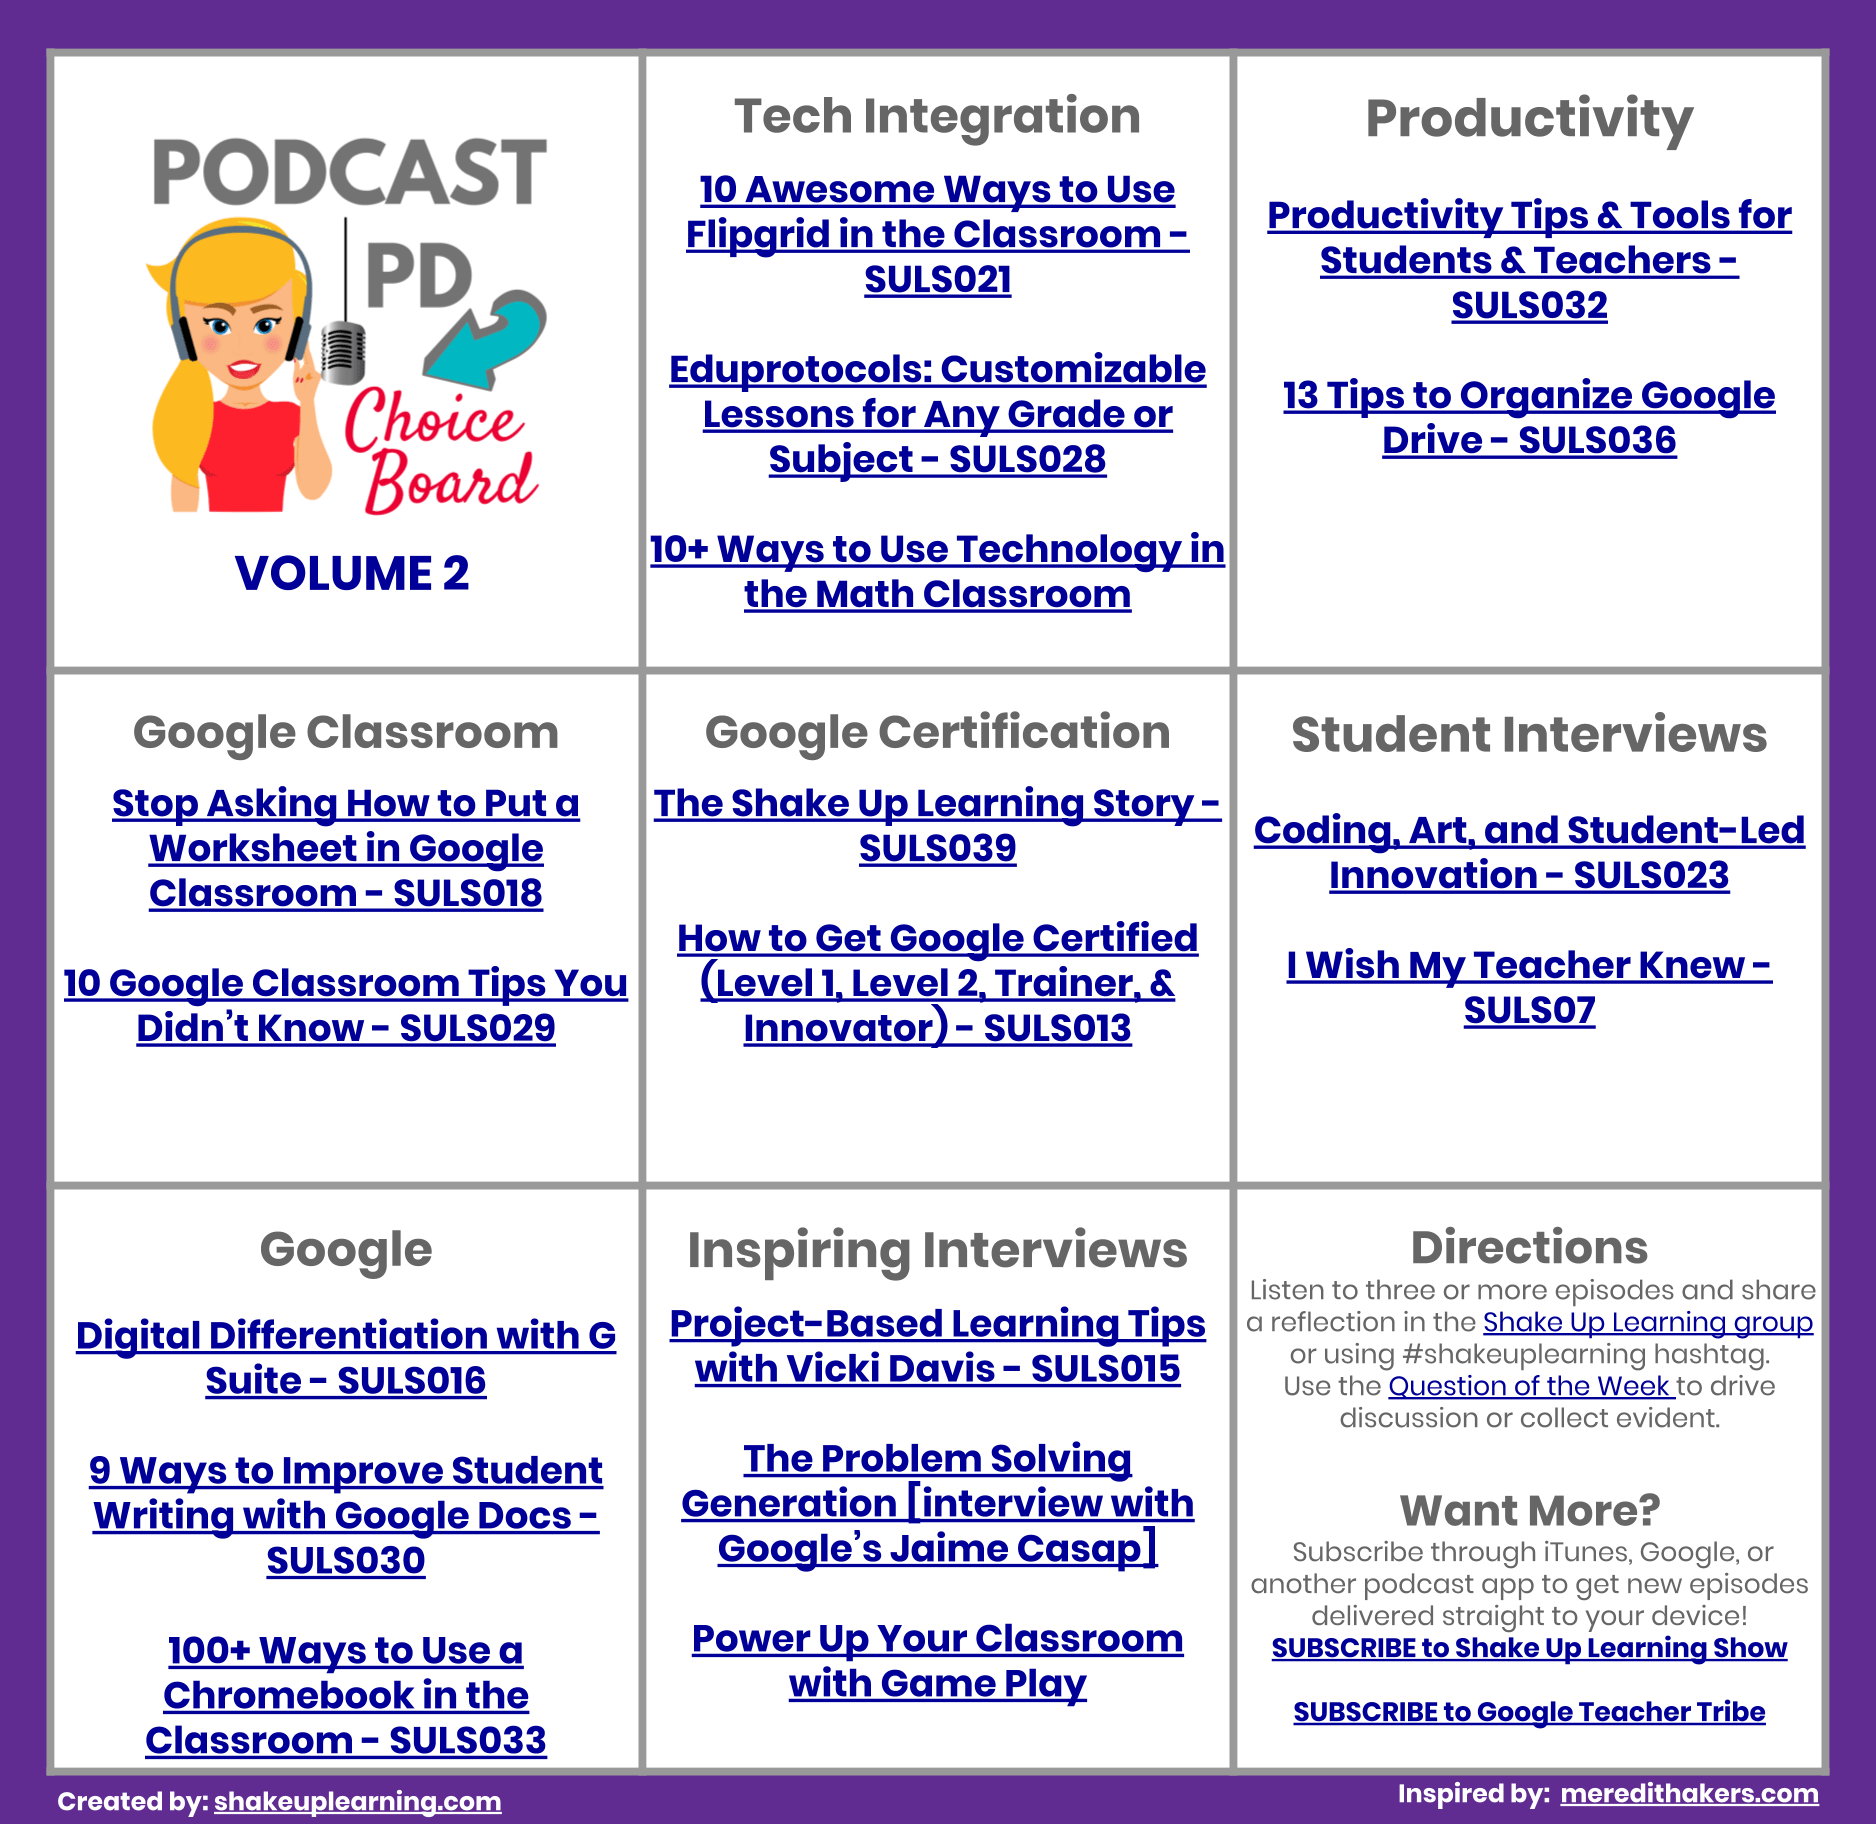 Podcast PD Choice Board for Teachers Vol. 2 (FREE Download!)